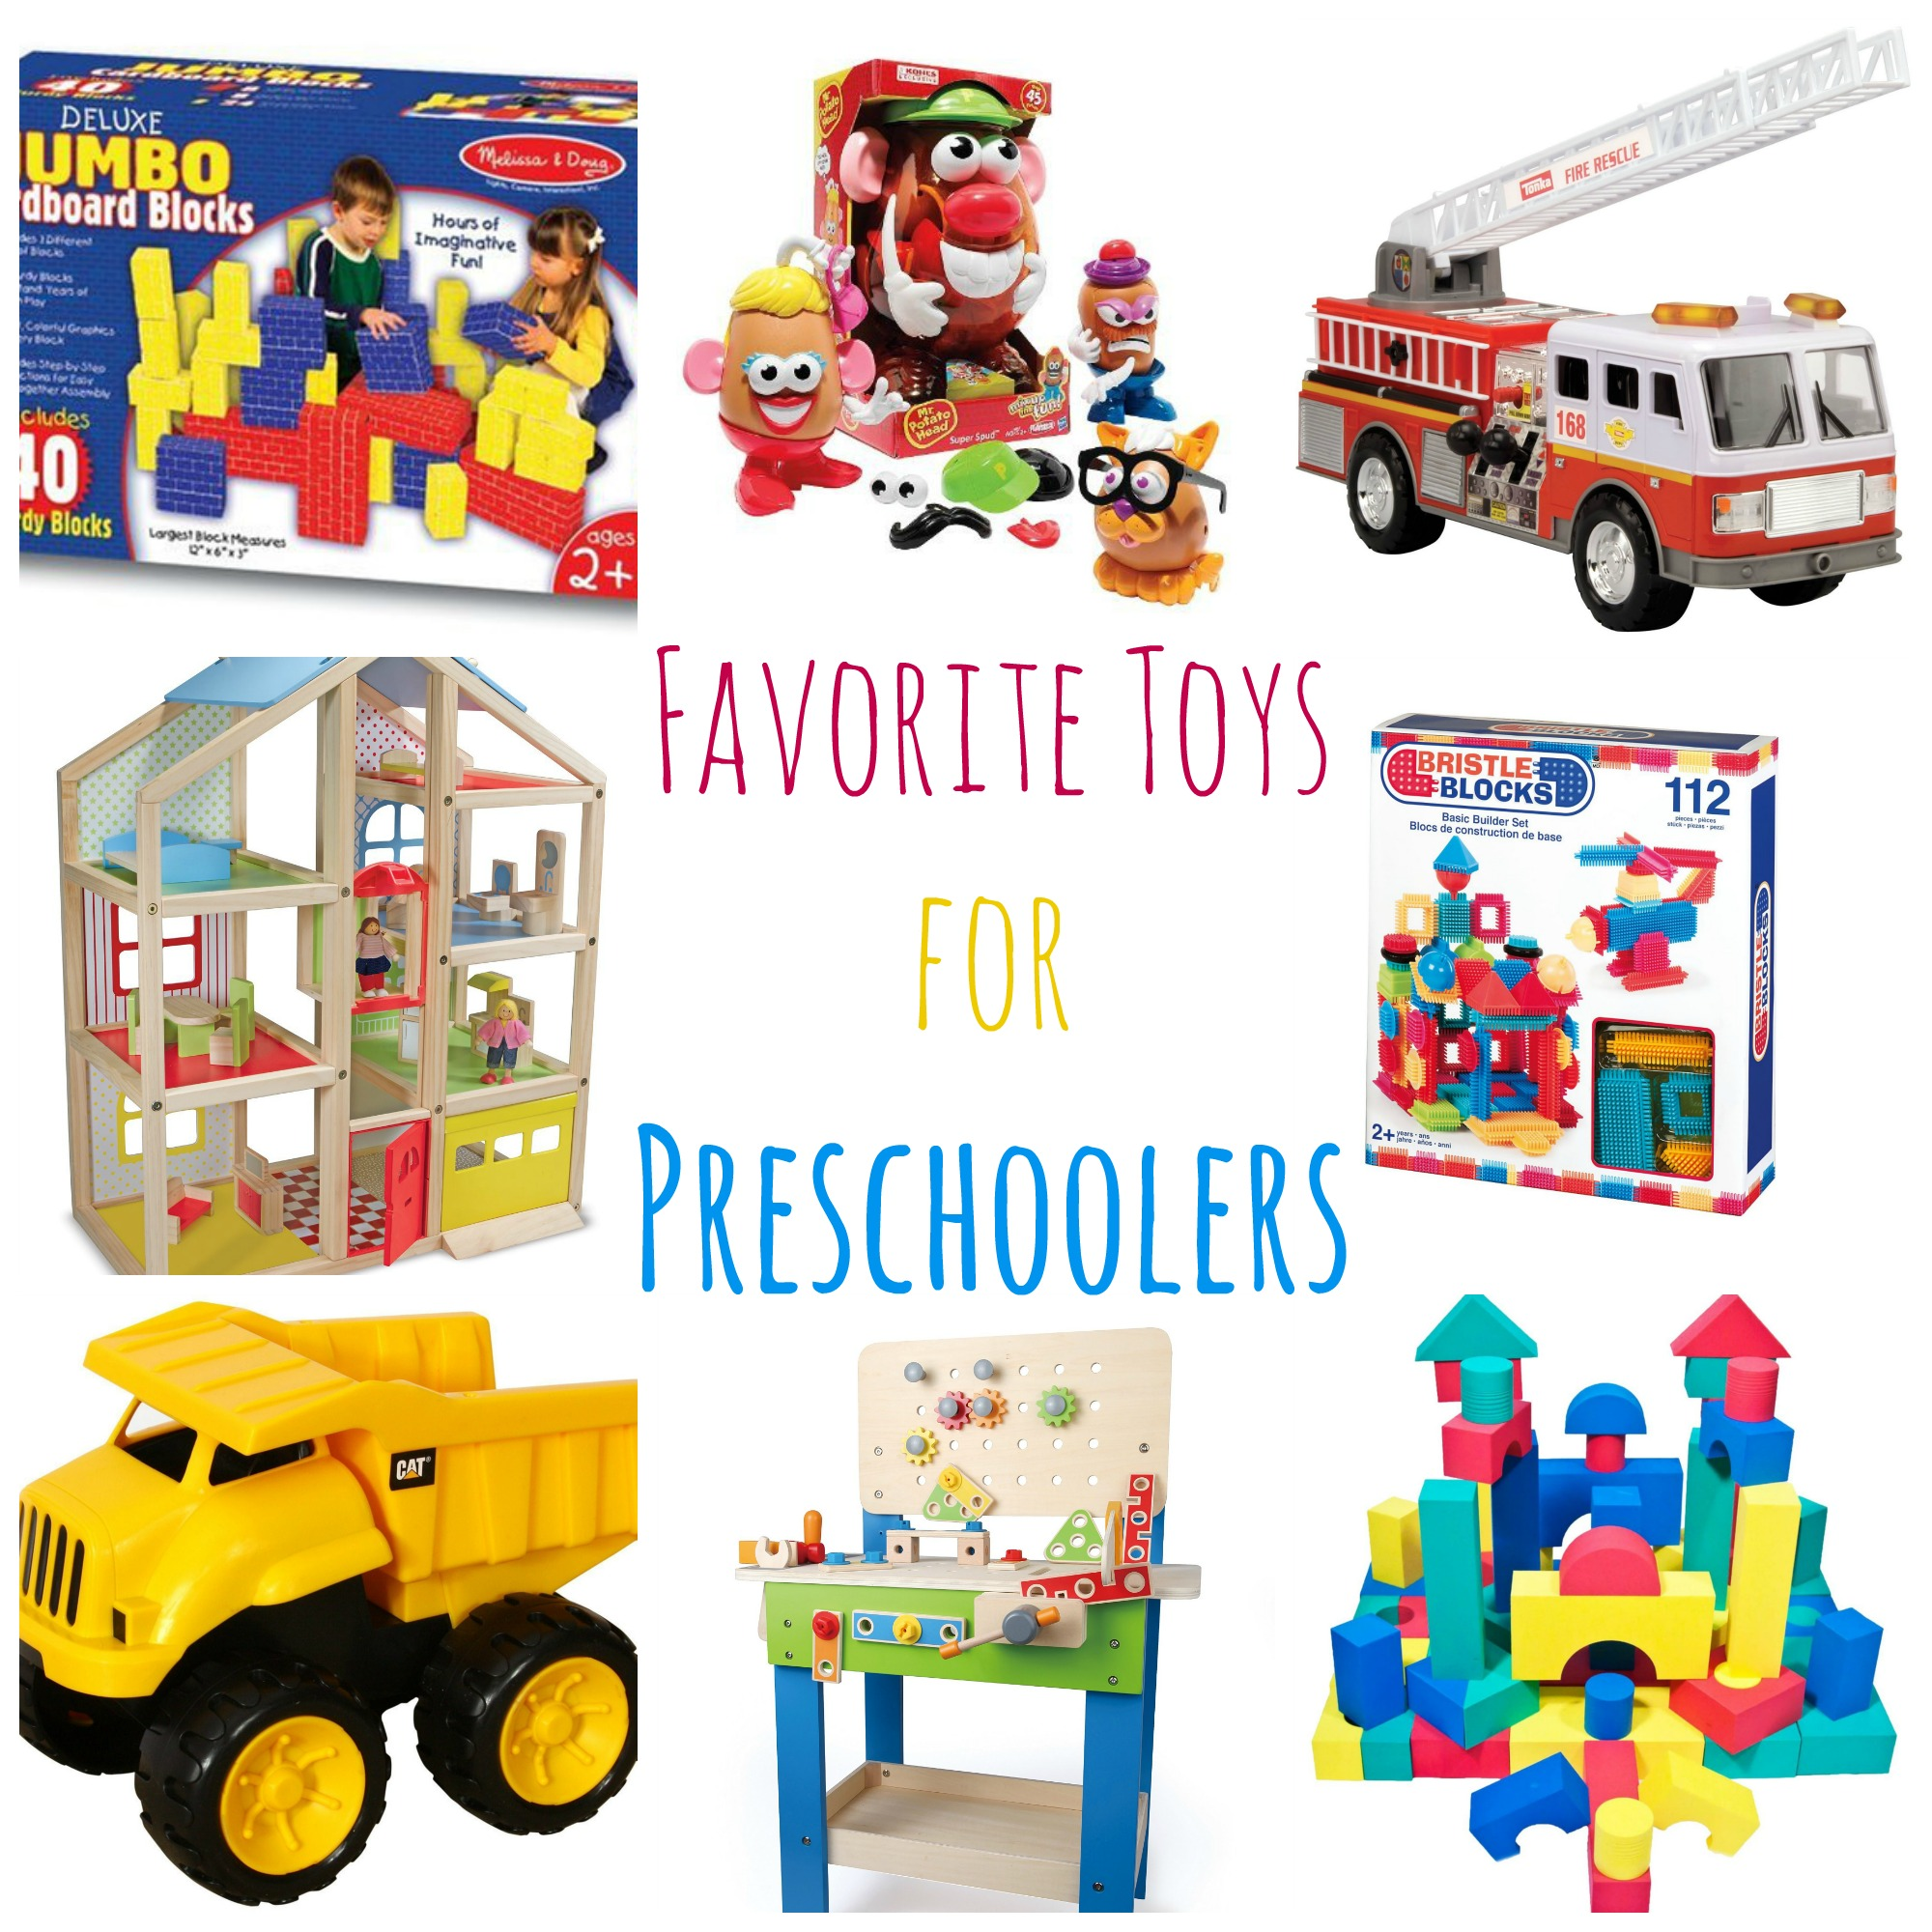 Best Toys For Preschool Classroom : Best toys for preschoolers happy home fairy